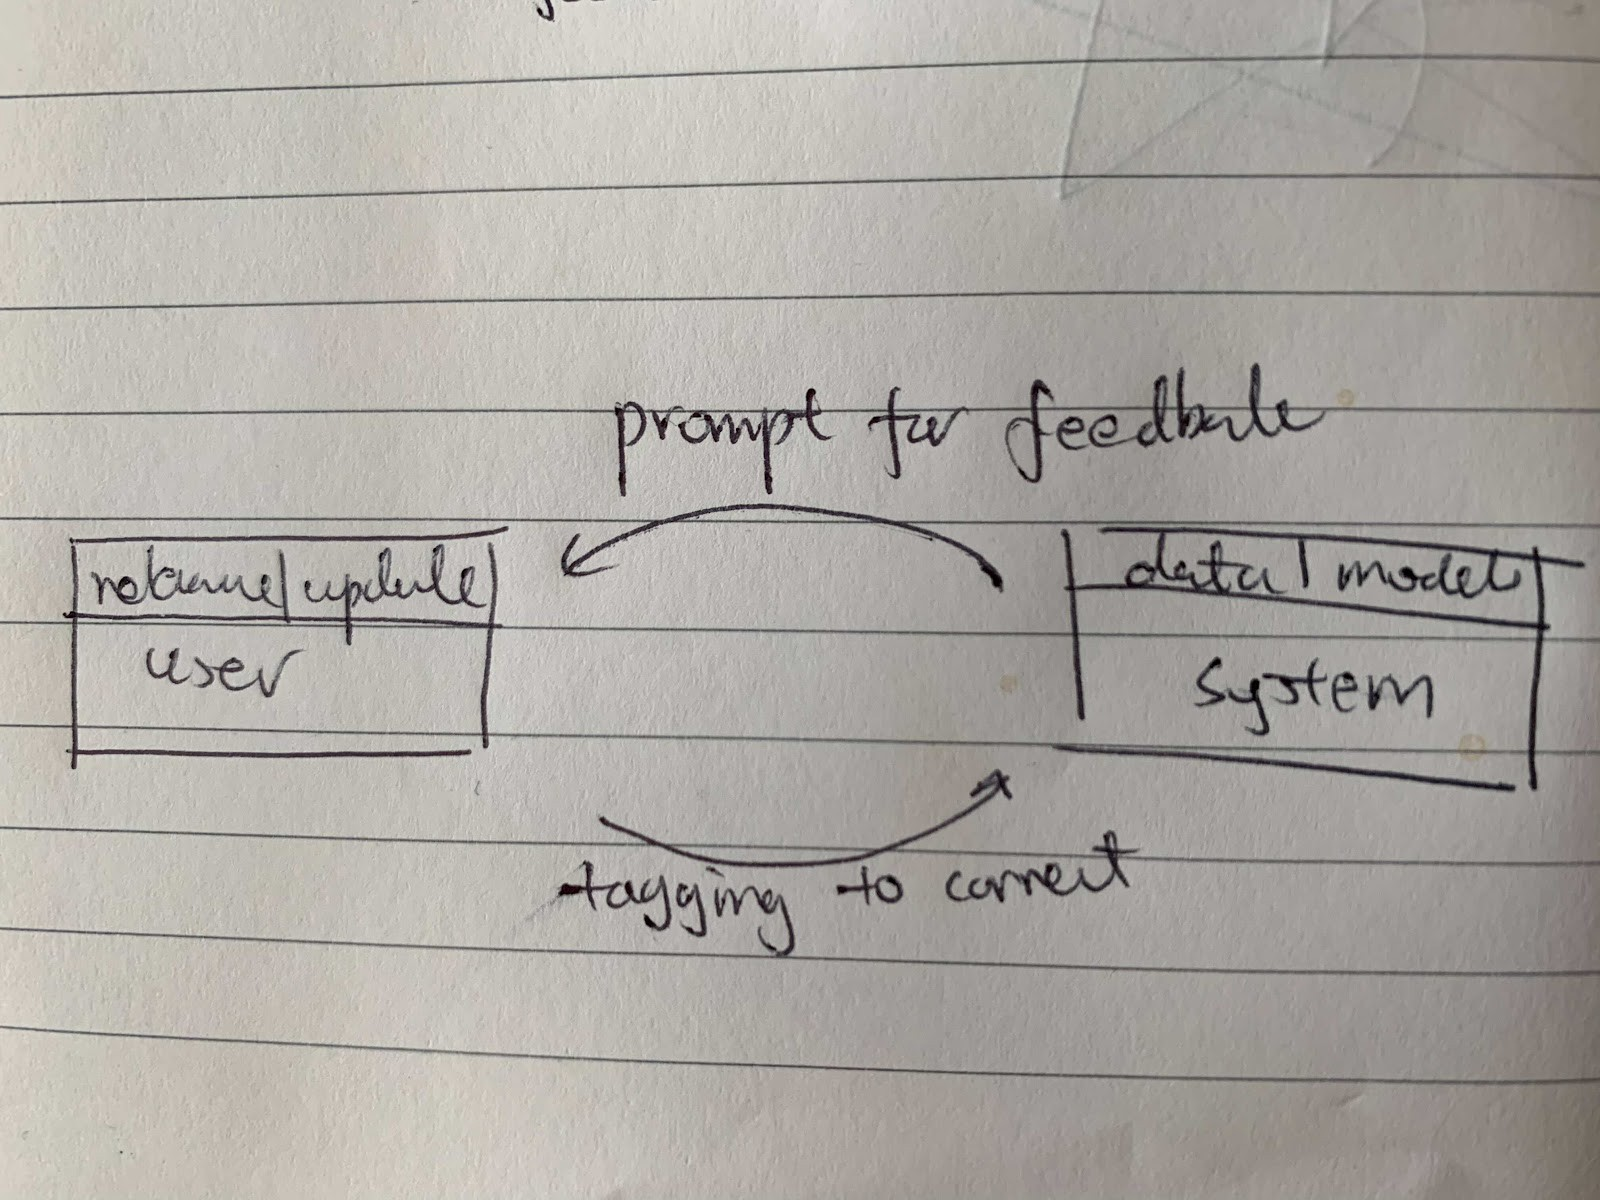 Hybrid feedback learning with user and system outputs informing each other to evolve.